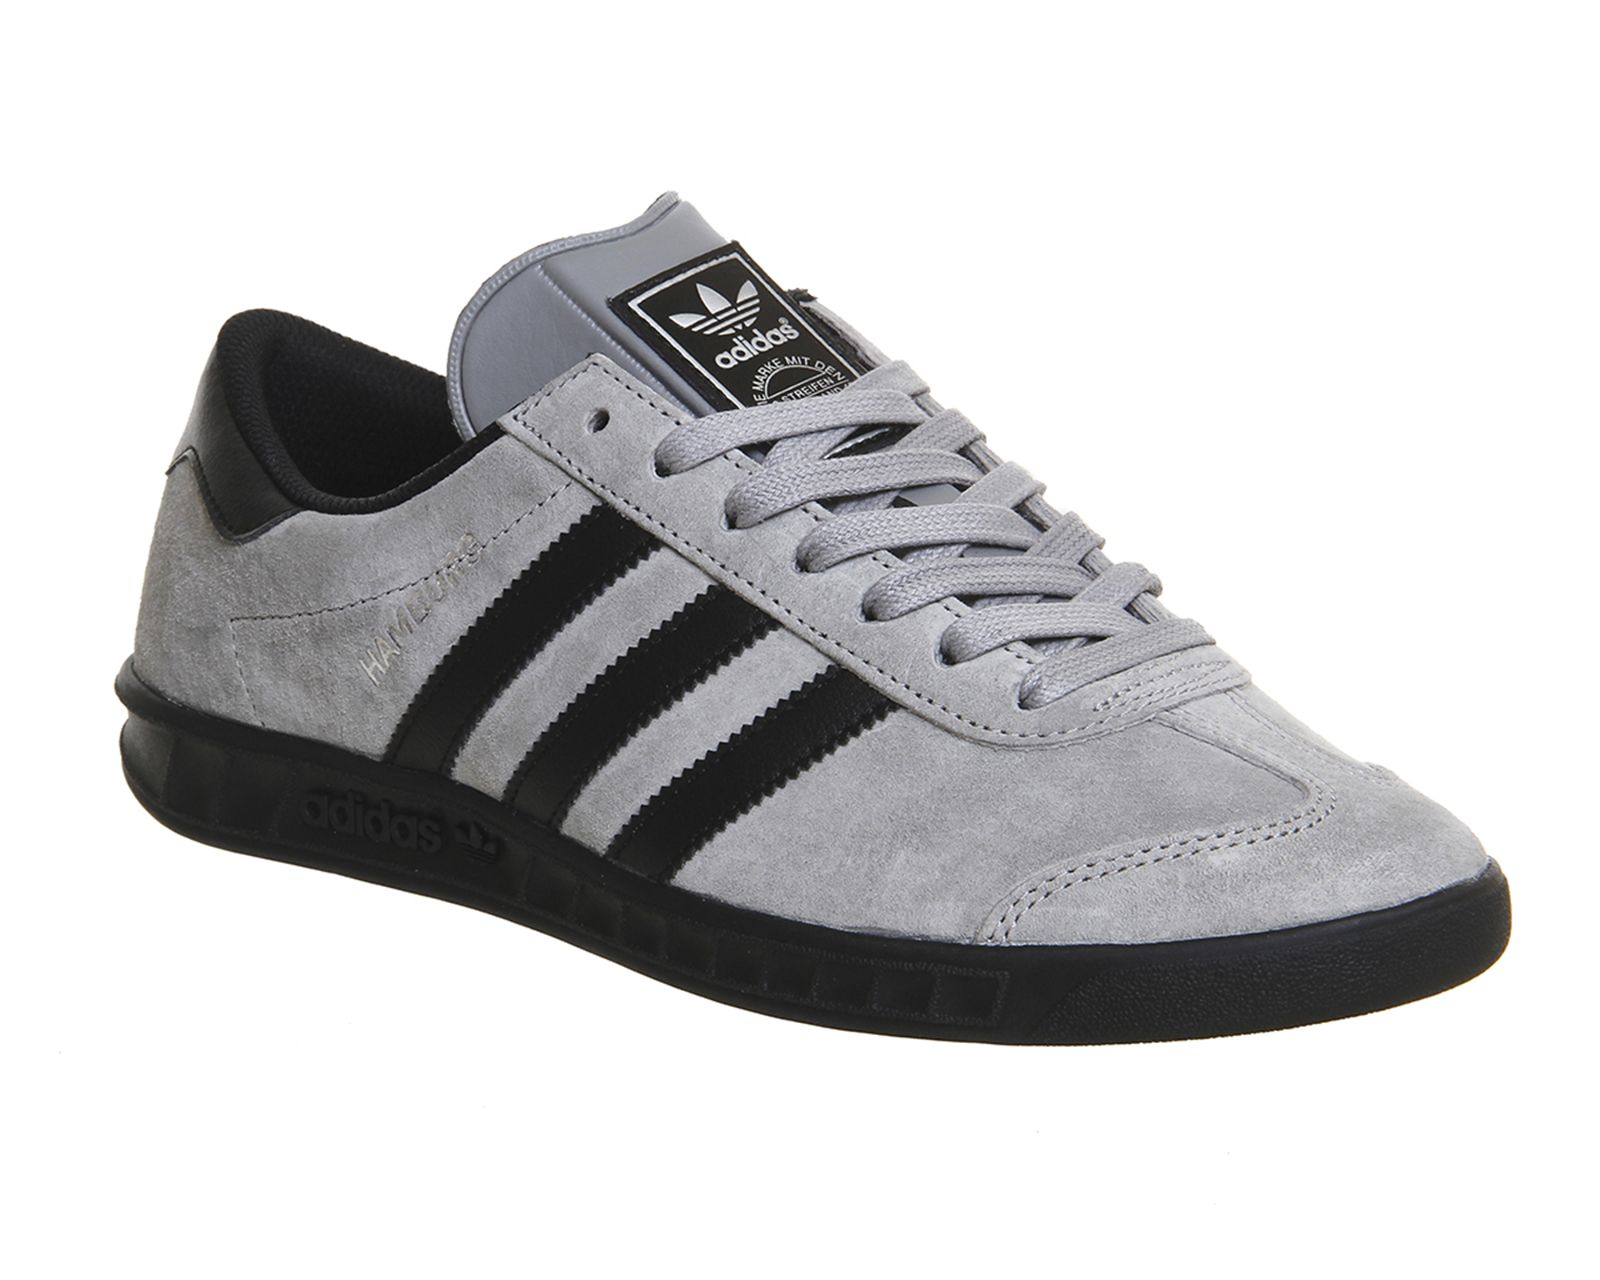 new product 591d5 8e9db Grey and Black Adidas Hamburg reduced to £40